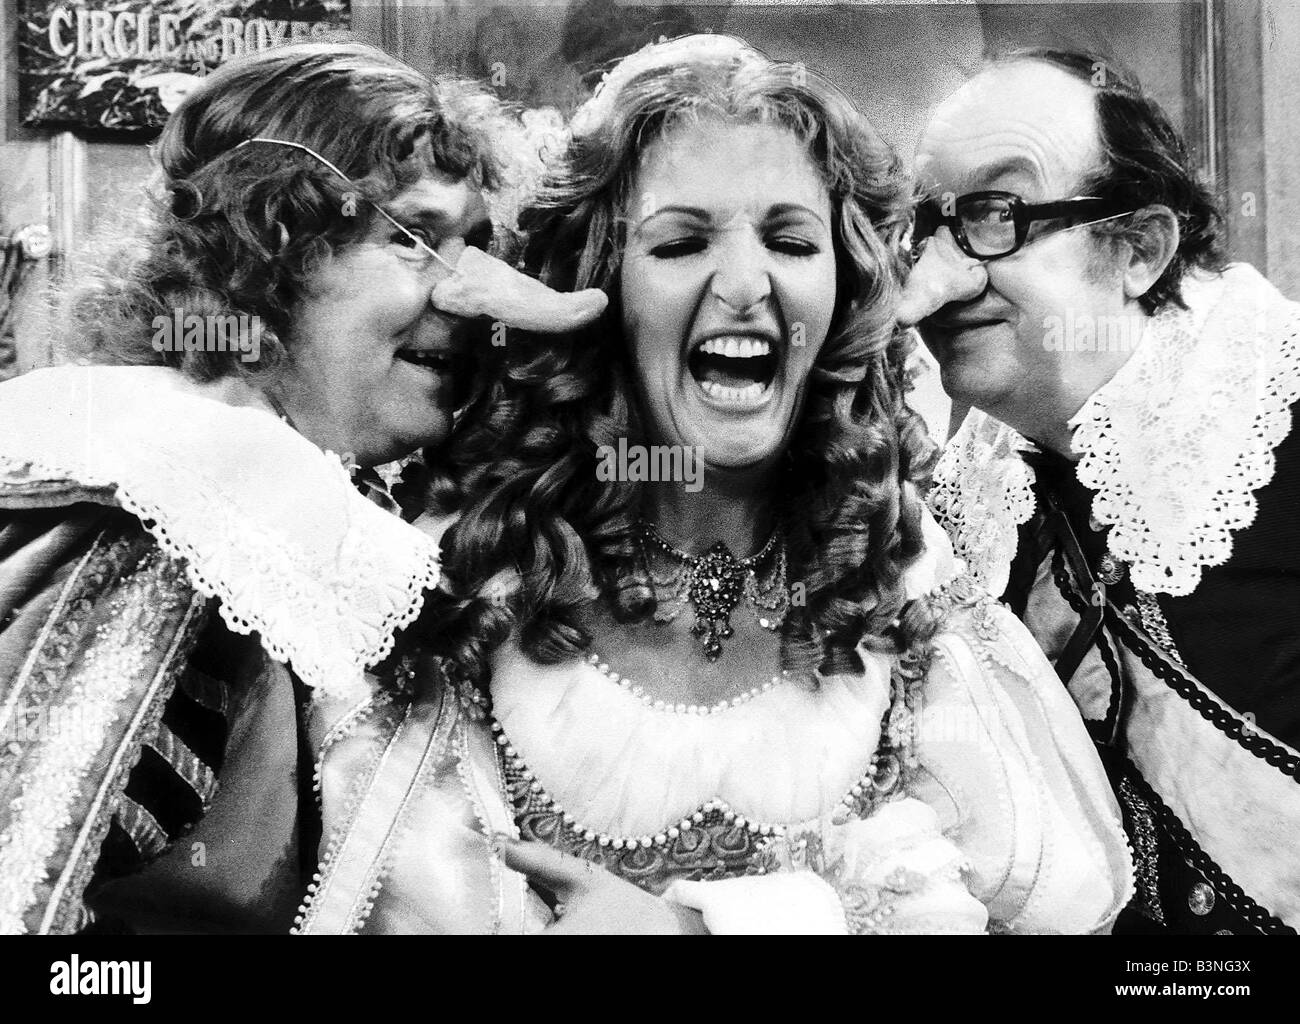 Morecambe Wise Christmas Show with Penelope Keith mirrorpix - Stock Image